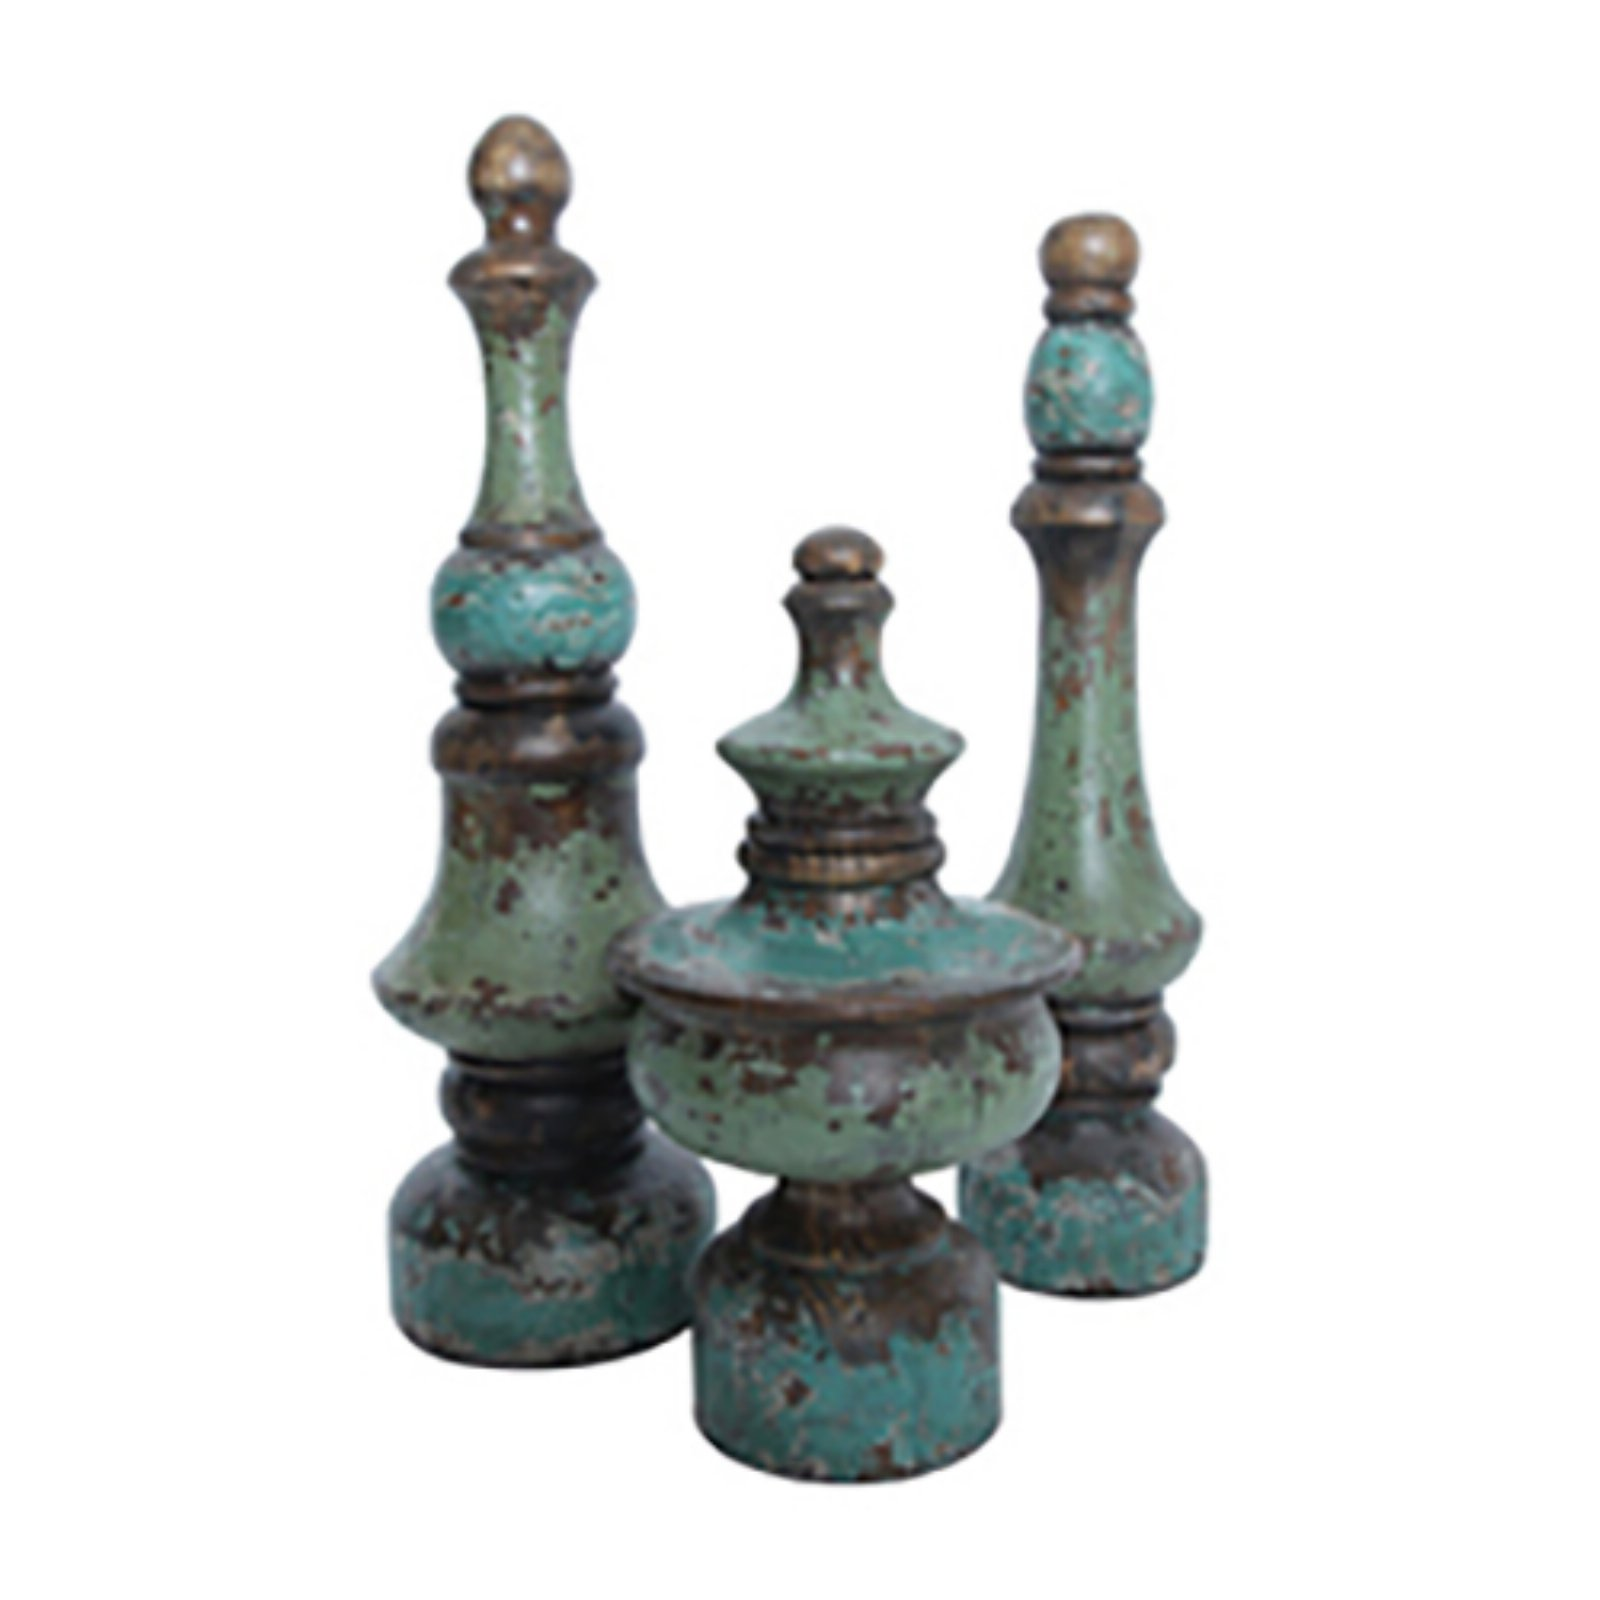 Guild Master Malaga Decorative Finials - Set of 3